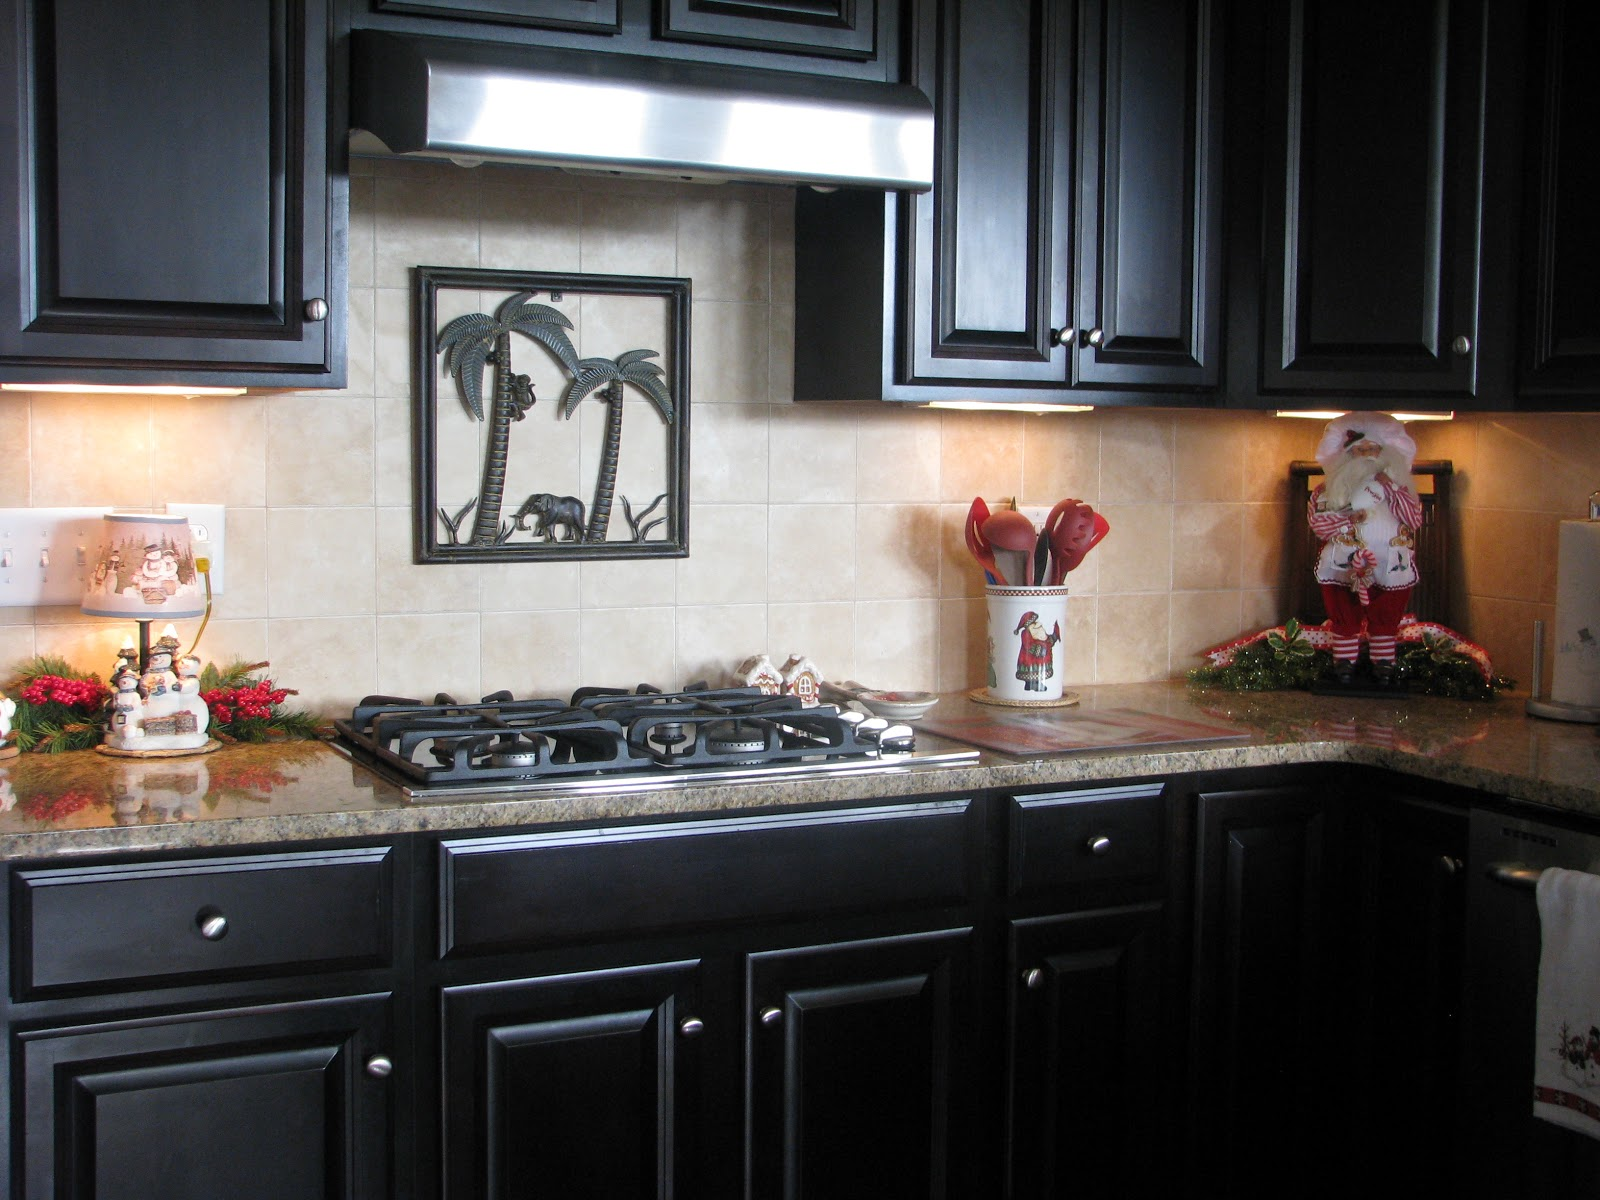 Vignette Design A Kitchen Tour: Designs By Pinky: ~~~My Christmas Kitchen!!!~~~